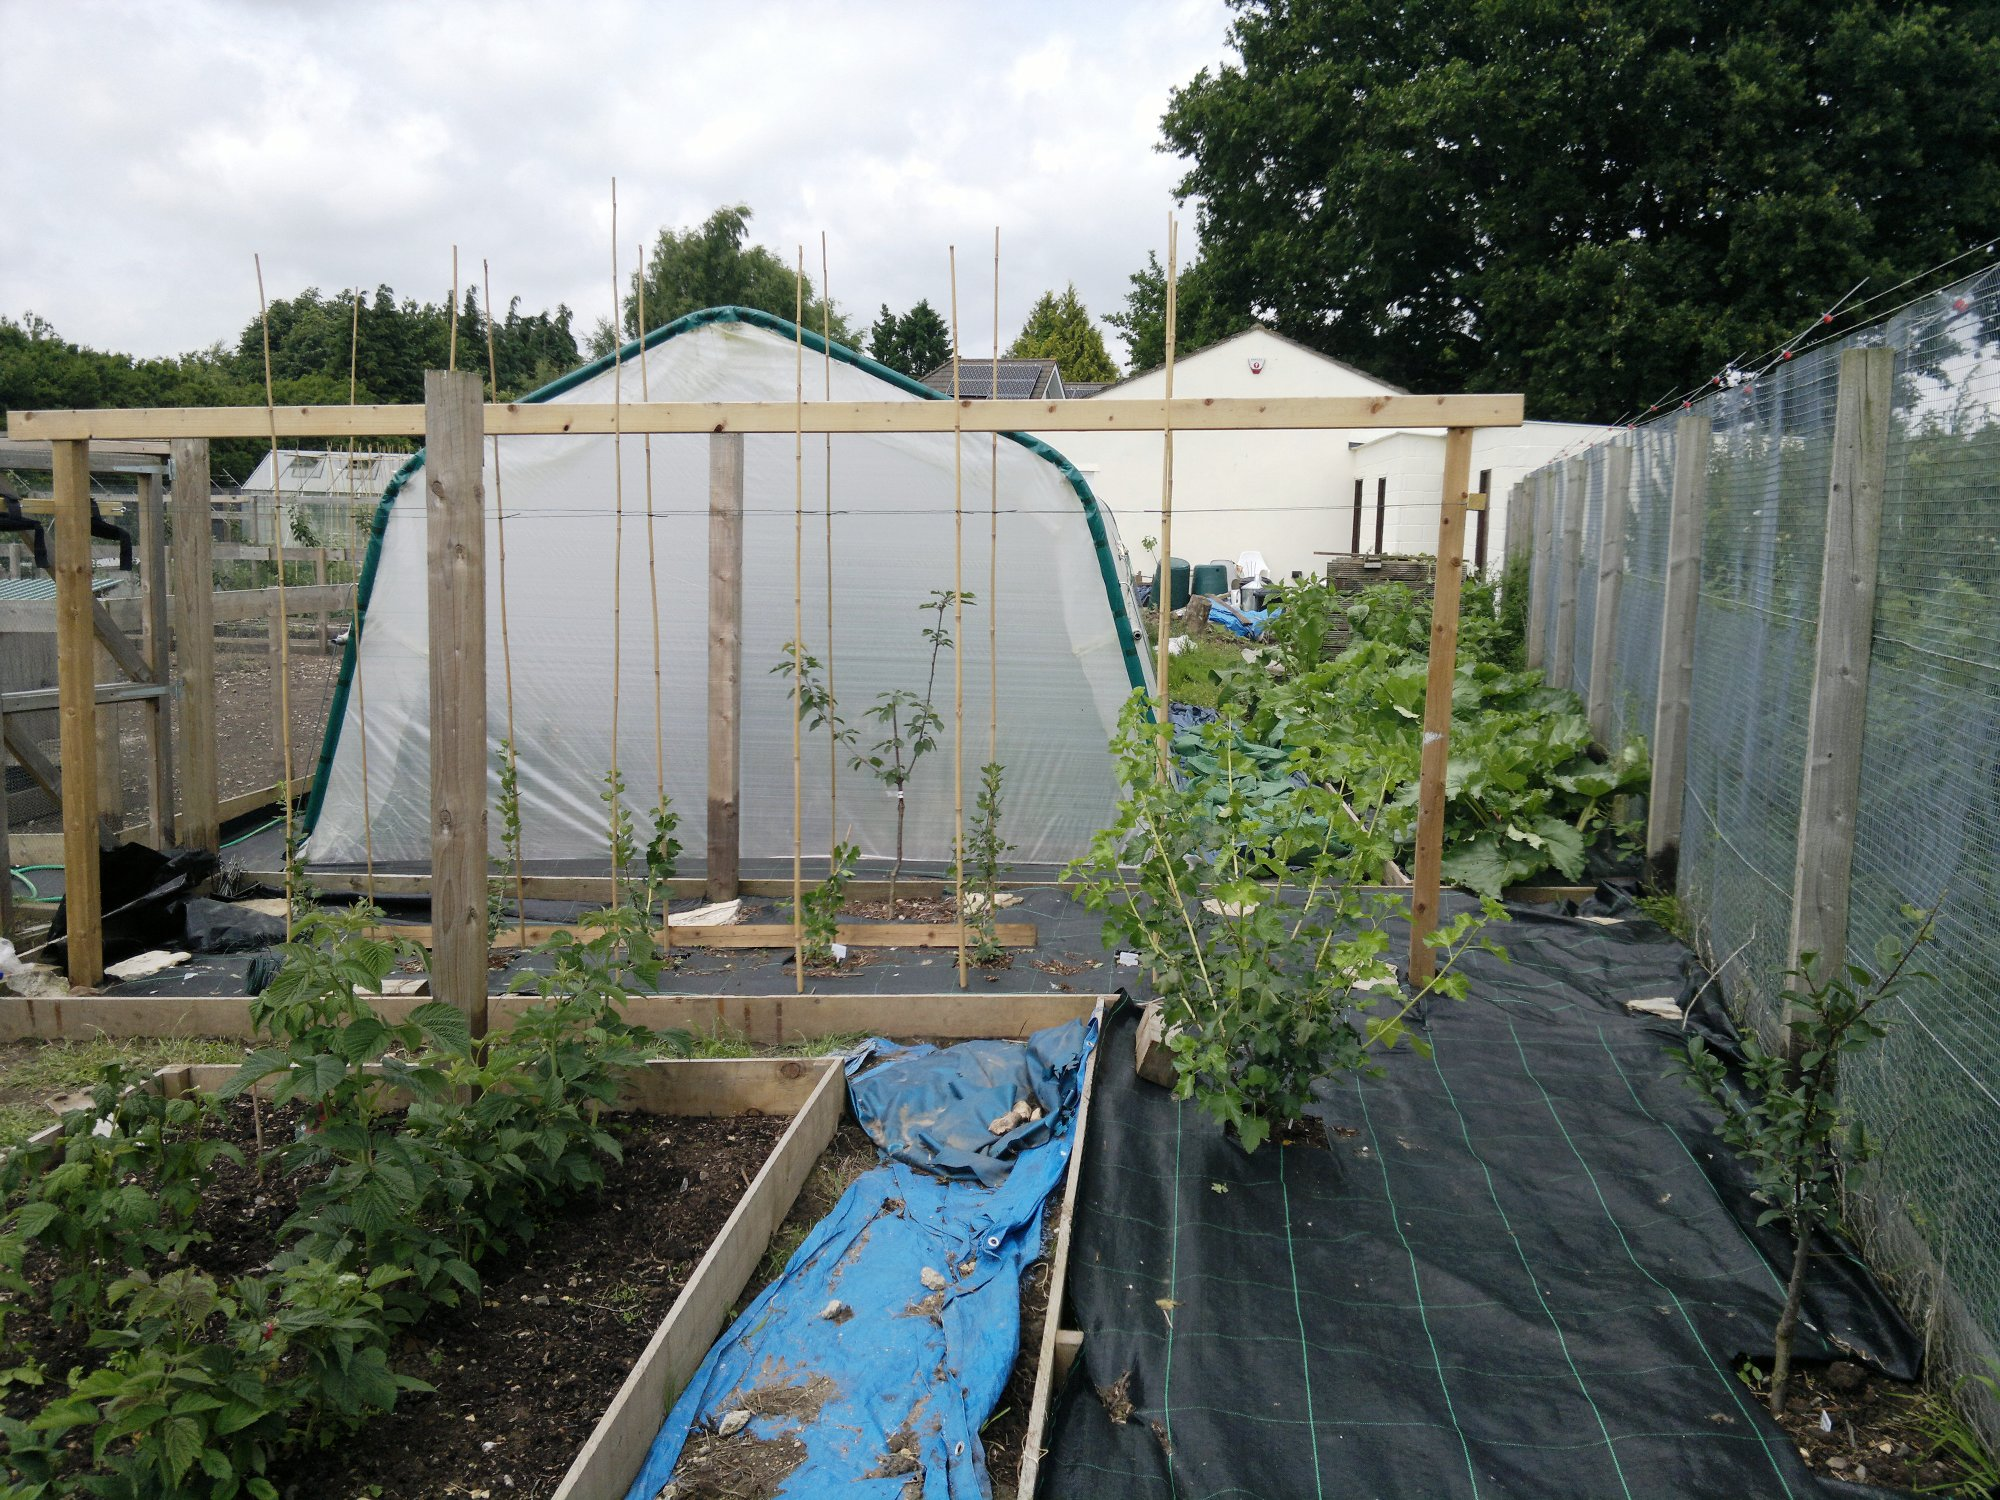 Gooseberries being trained as double cordons, a jostaberry, and a view of the perennial bed on the right